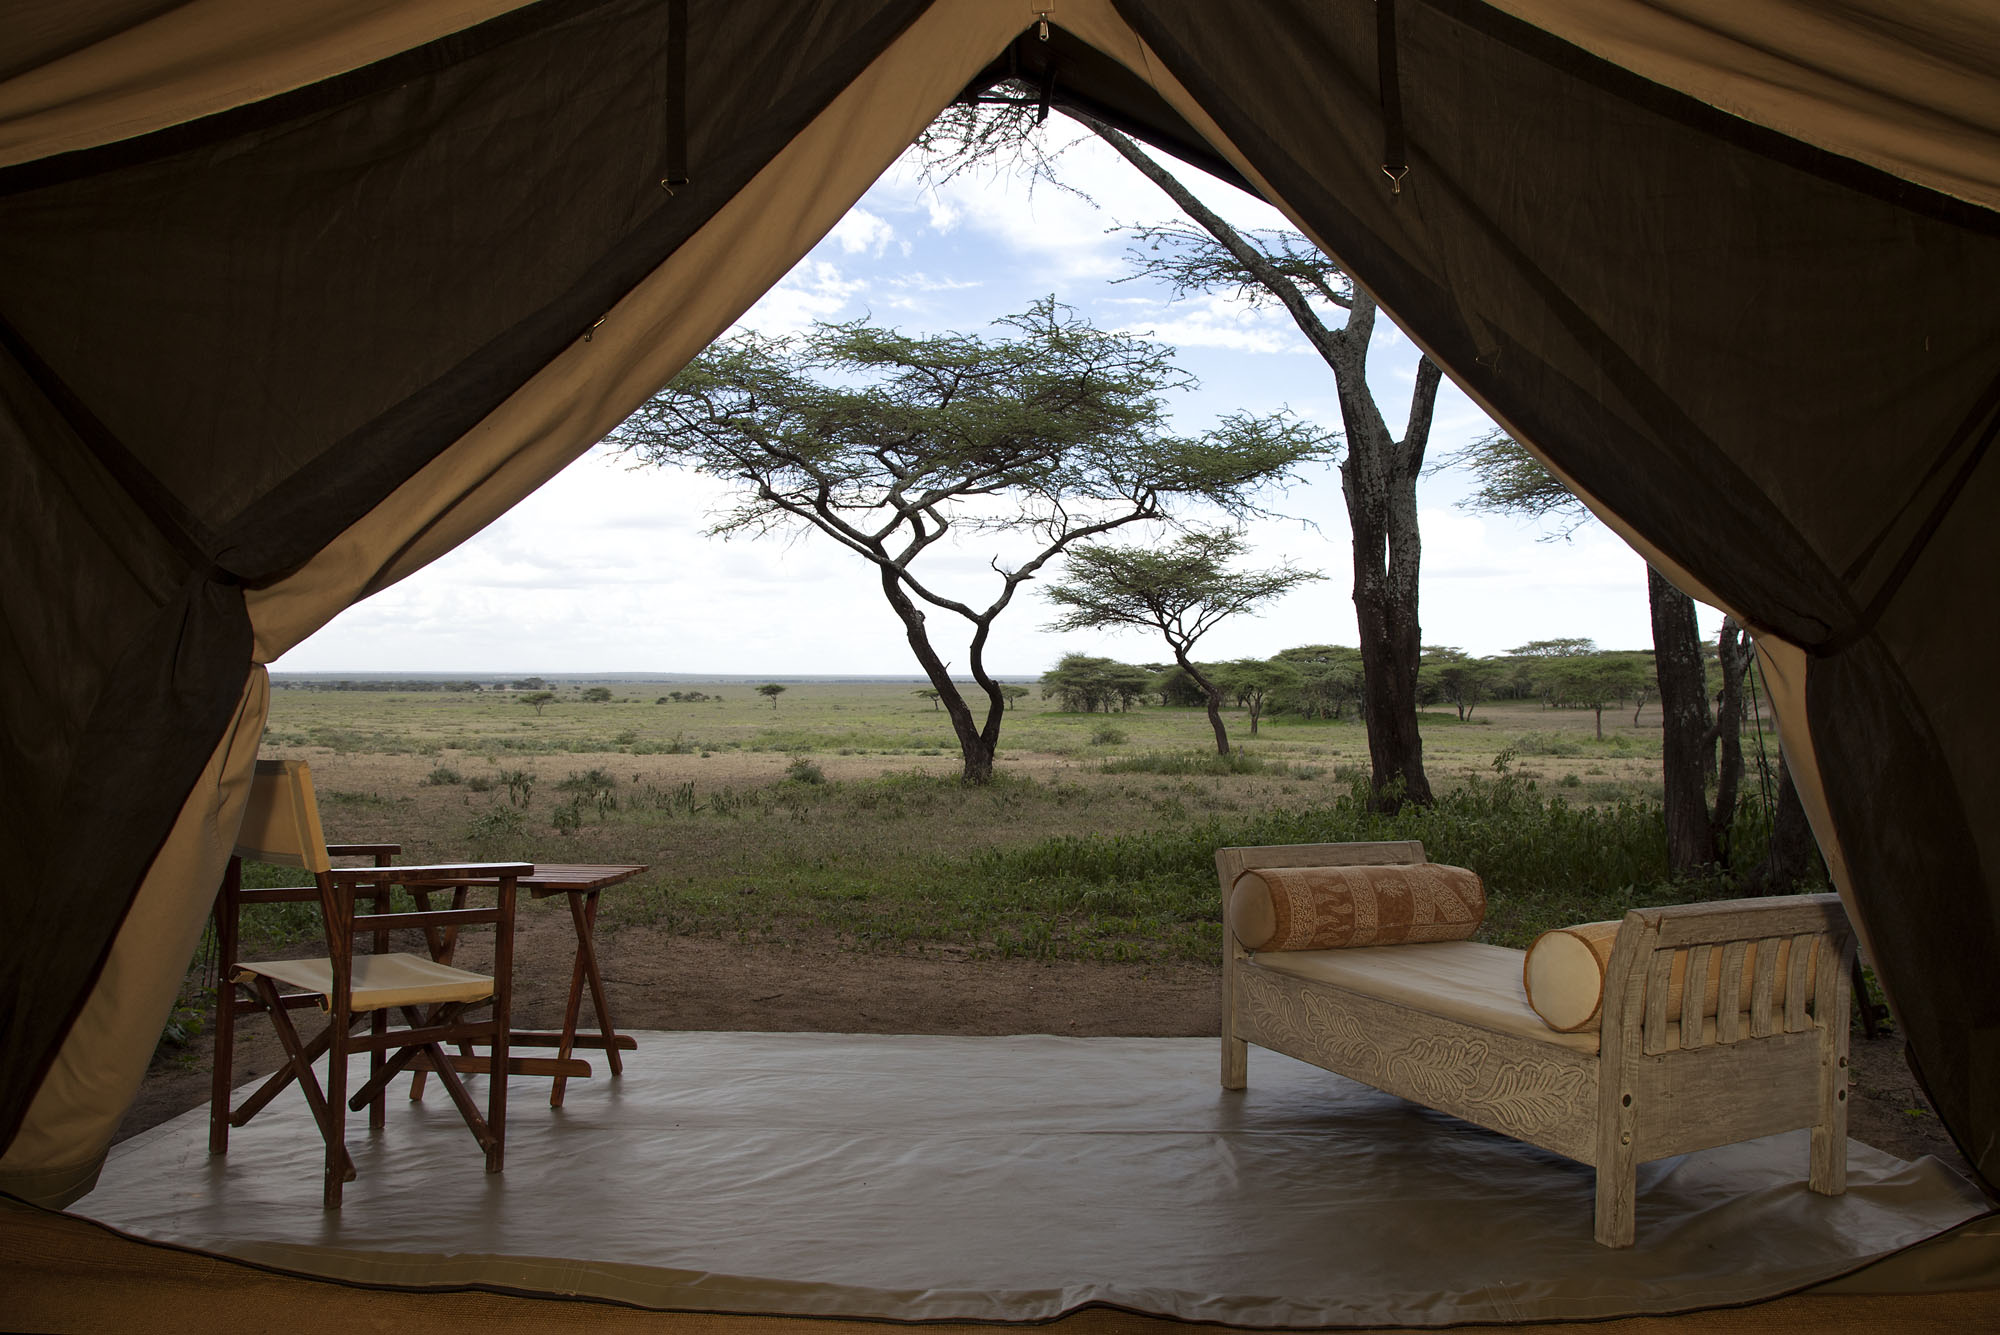 The view from our tent, Serian South Serengeti